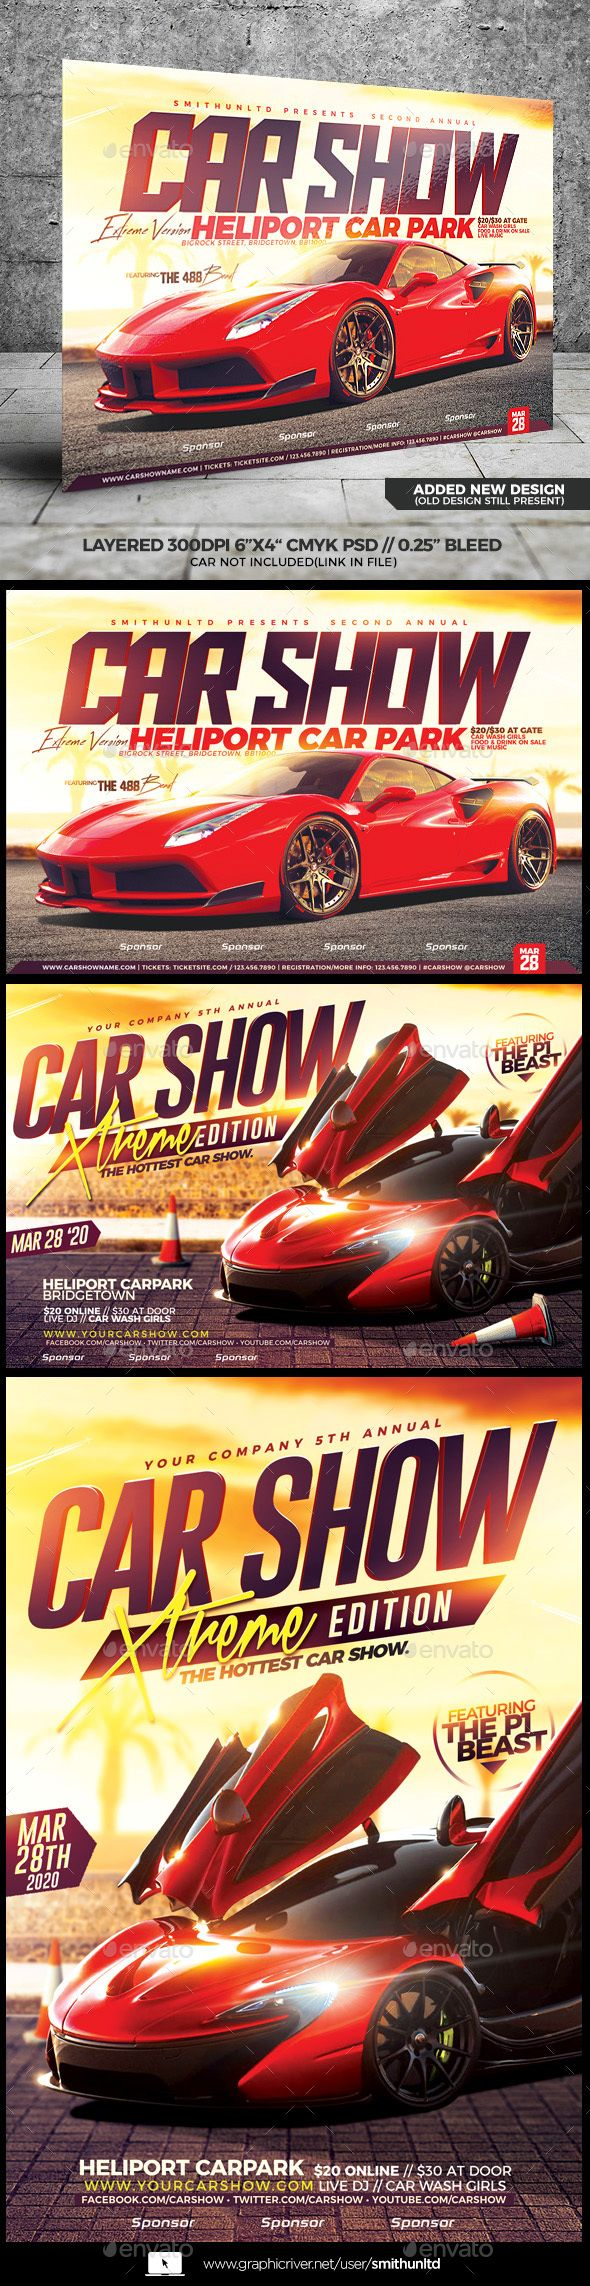 Car Show Flyer Extreme Edition Pinterest Edit Text Fonts And - Car show flyer template word